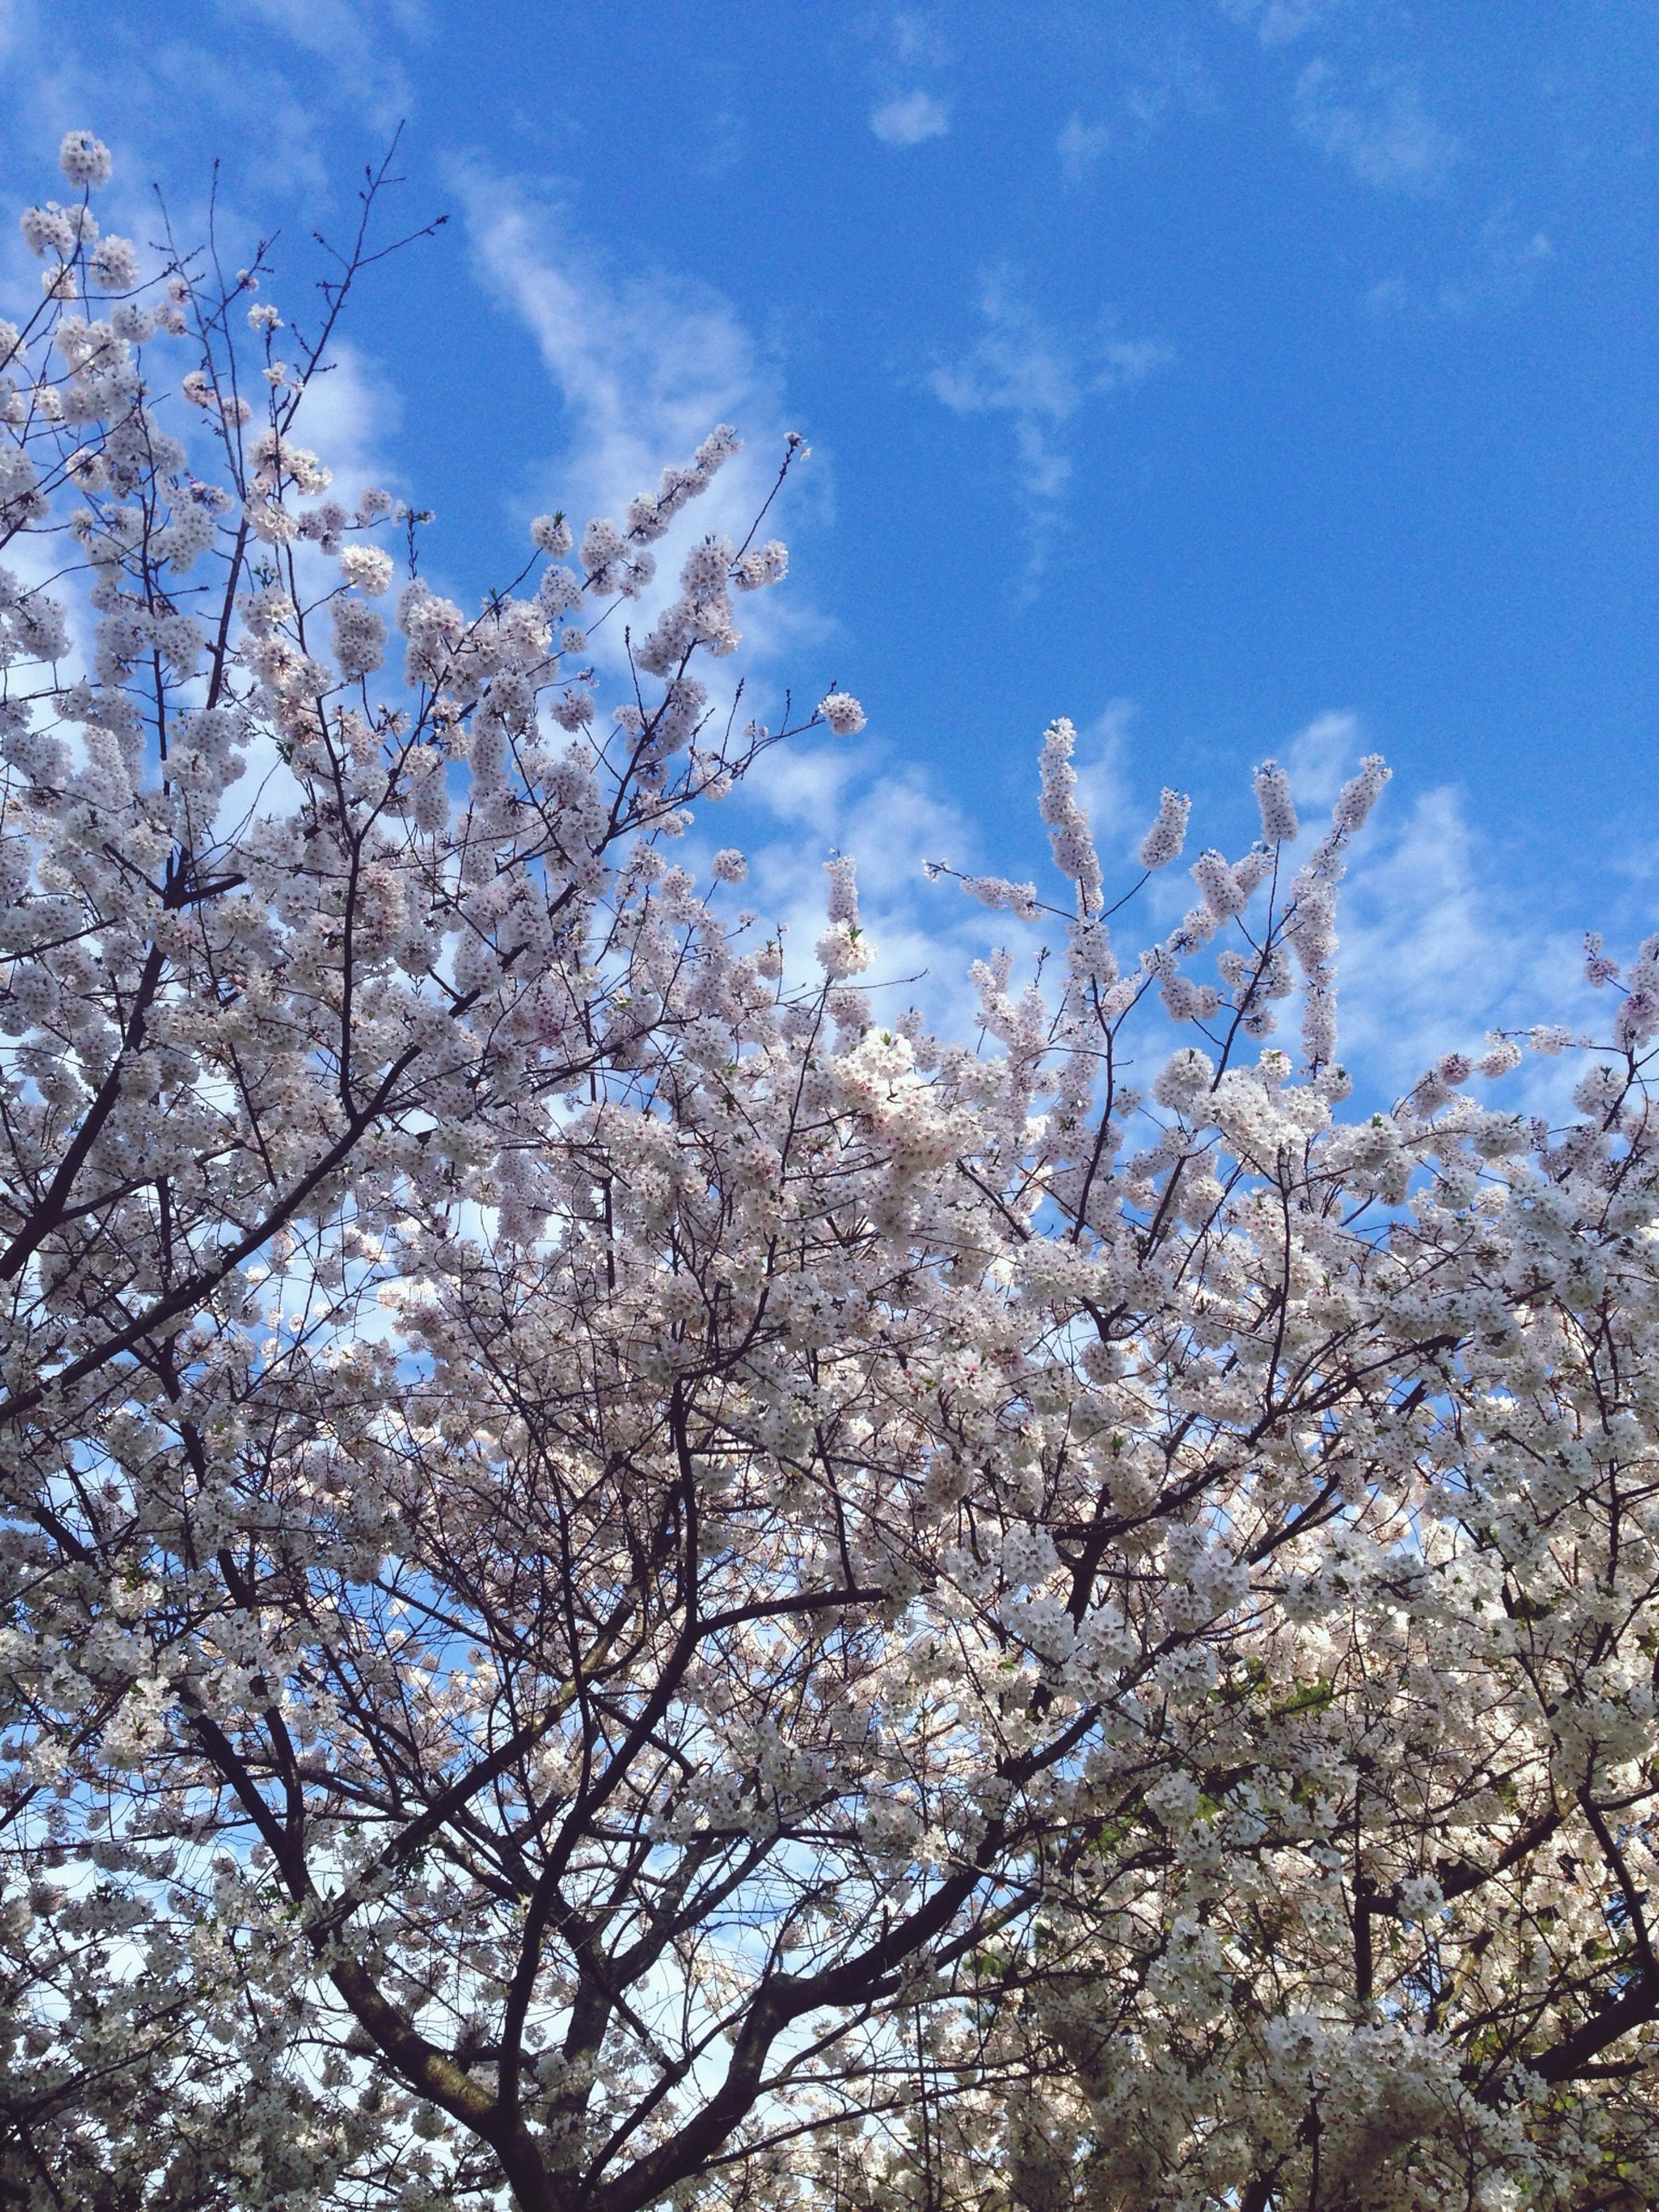 flower, tree, branch, low angle view, cherry blossom, freshness, growth, beauty in nature, blossom, cherry tree, nature, fragility, sky, white color, springtime, in bloom, fruit tree, blooming, blue, day